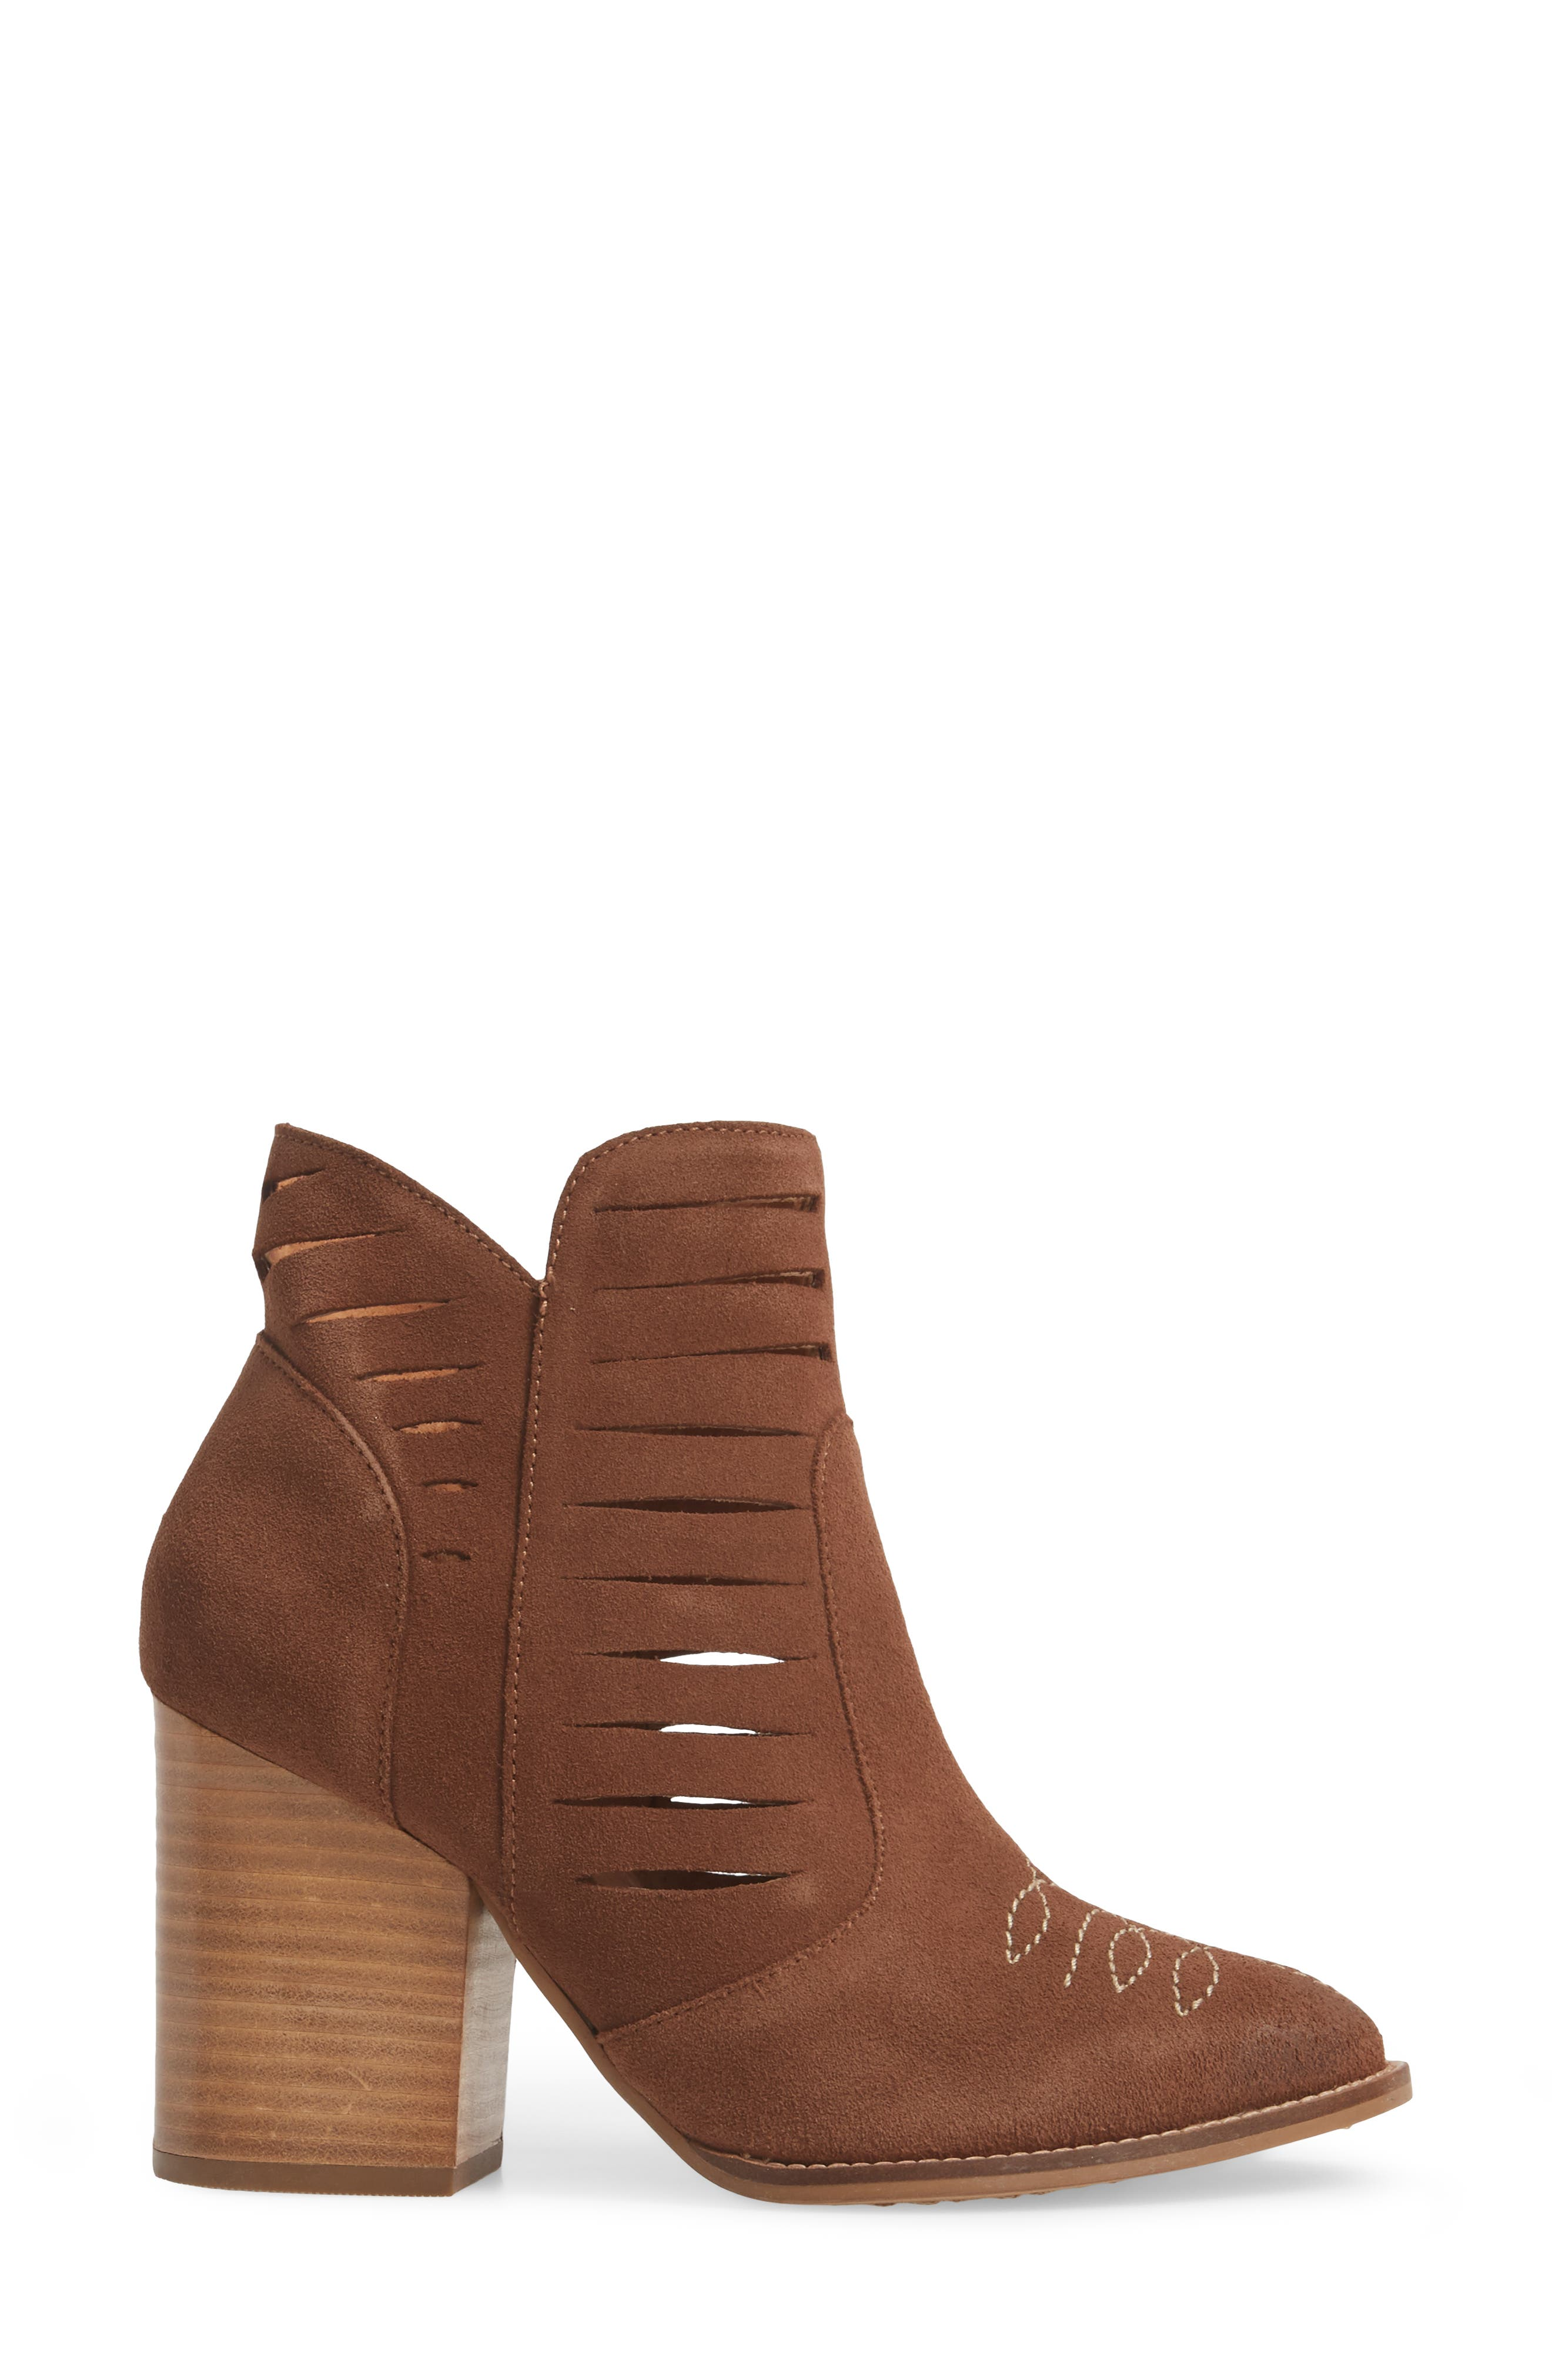 Adriana Western Bootie,                             Alternate thumbnail 3, color,